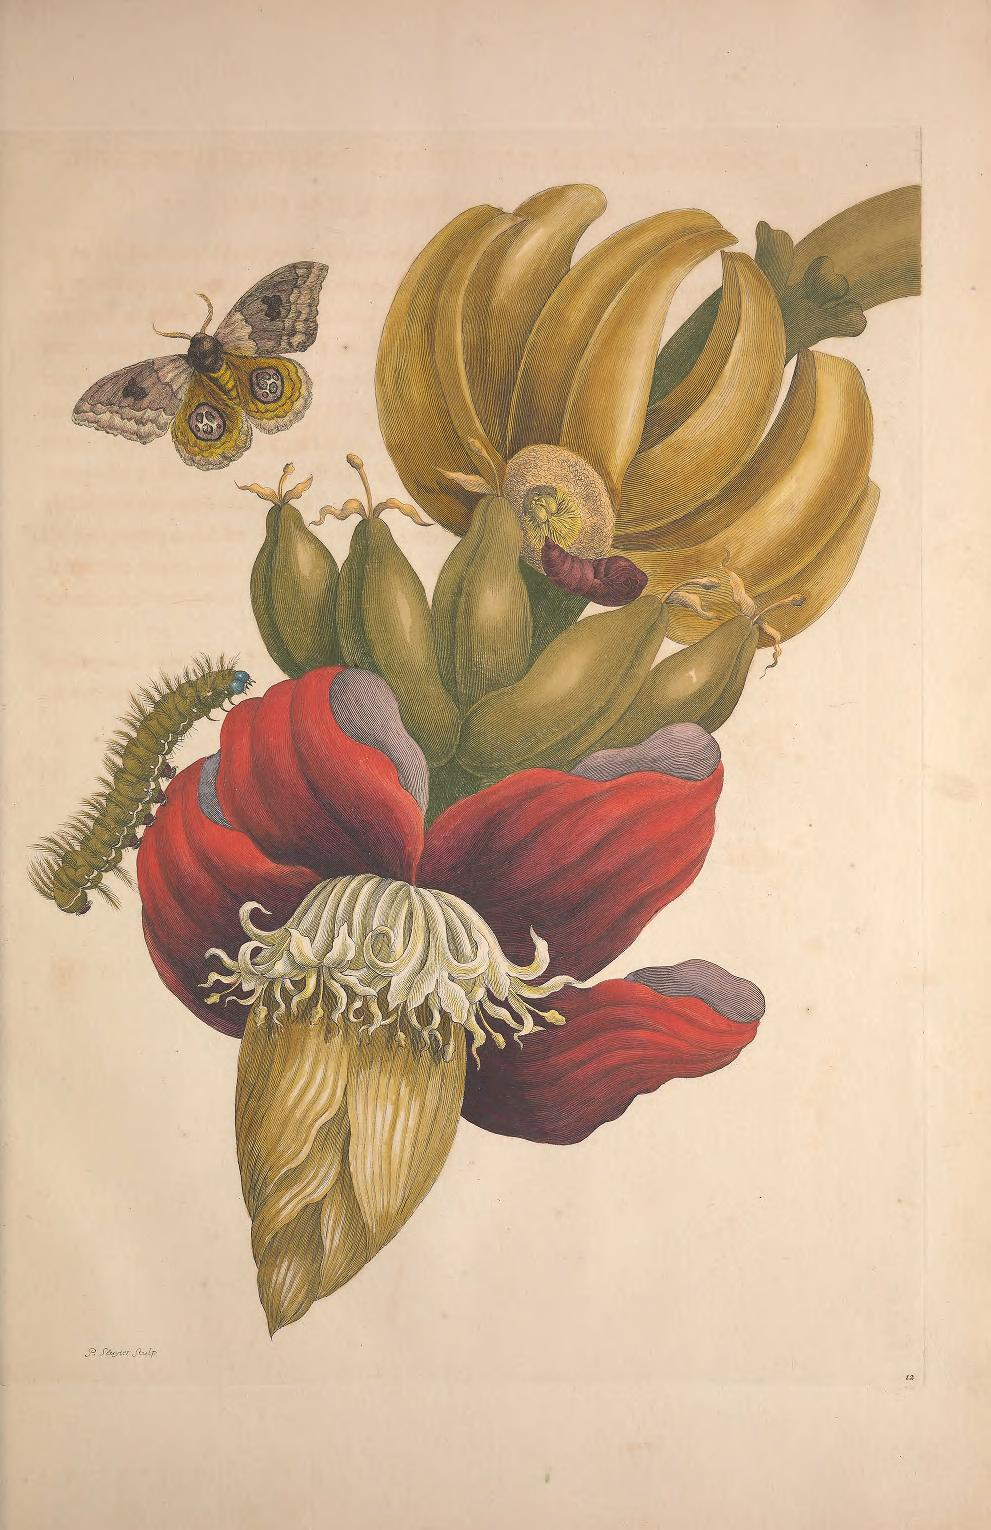 from  https://www.biodiversitylibrary.org/item/129308#page/45/mode/1up